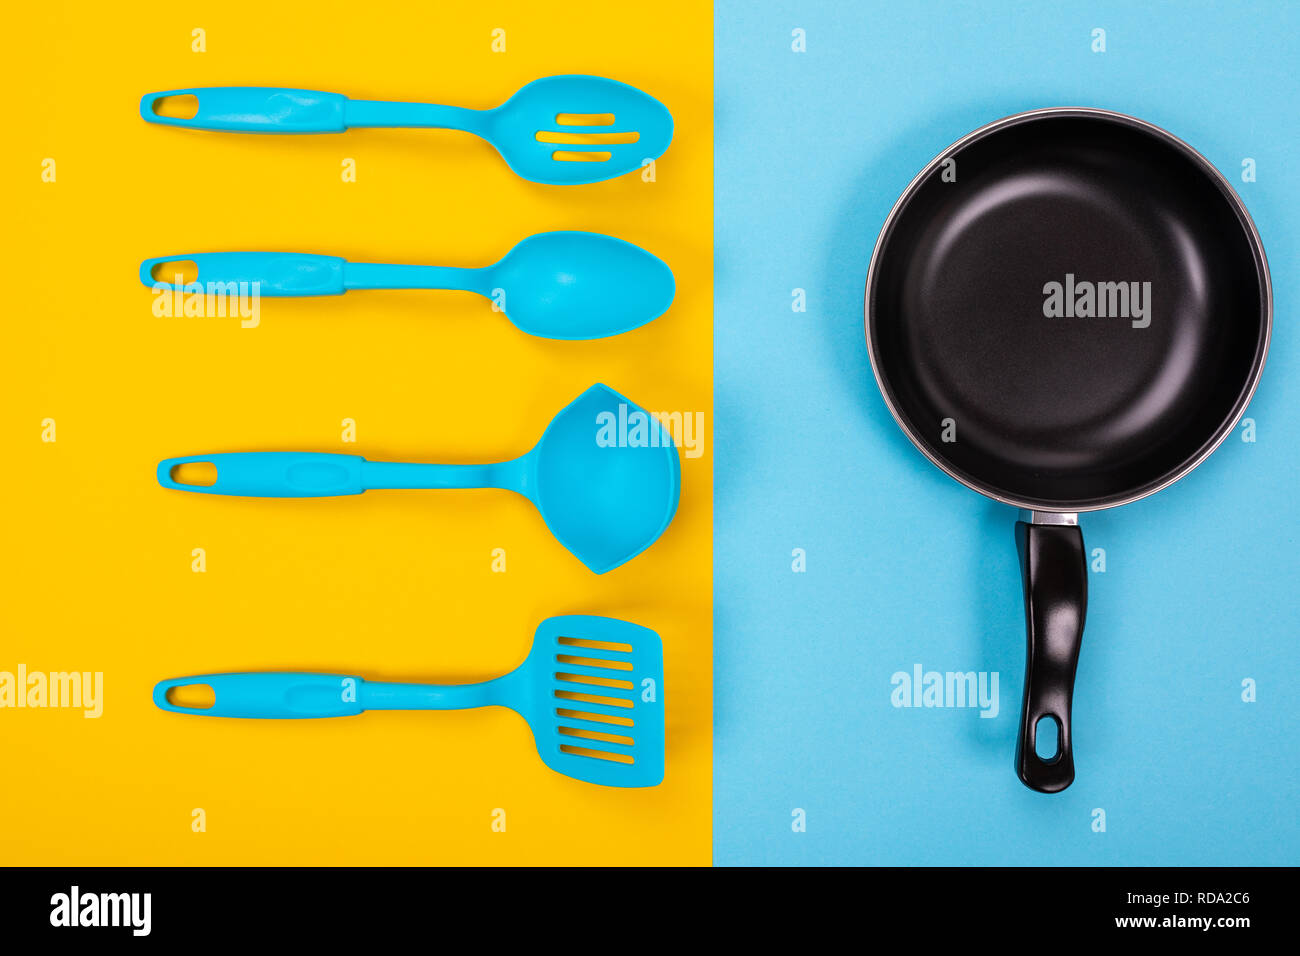 Close-up picture of frying pan with spatula and spoon as kitchen utensils for cooking concept - Stock Image